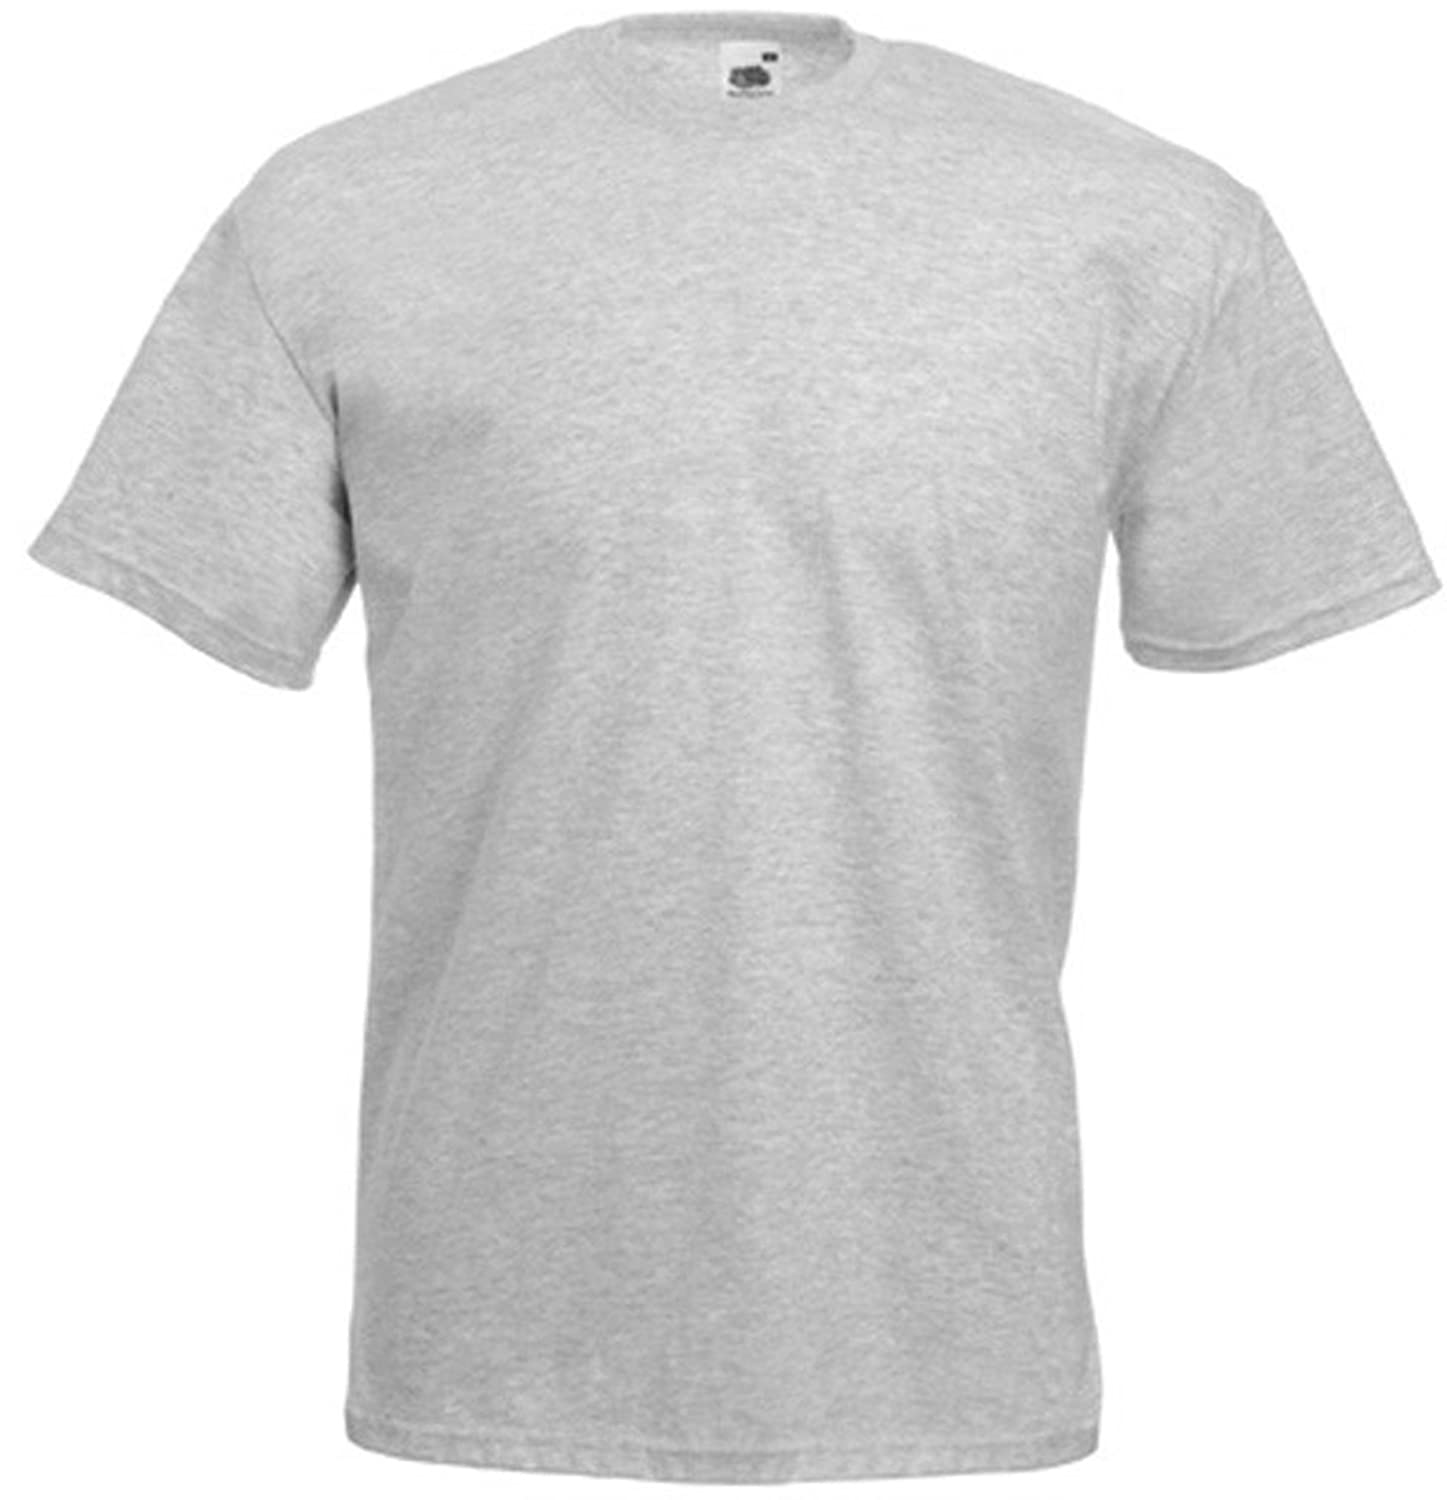 Black t shirt amazon - Heather Grey T Shirt Plain Tee Apparel Clothing Top Gift For Him Or Her